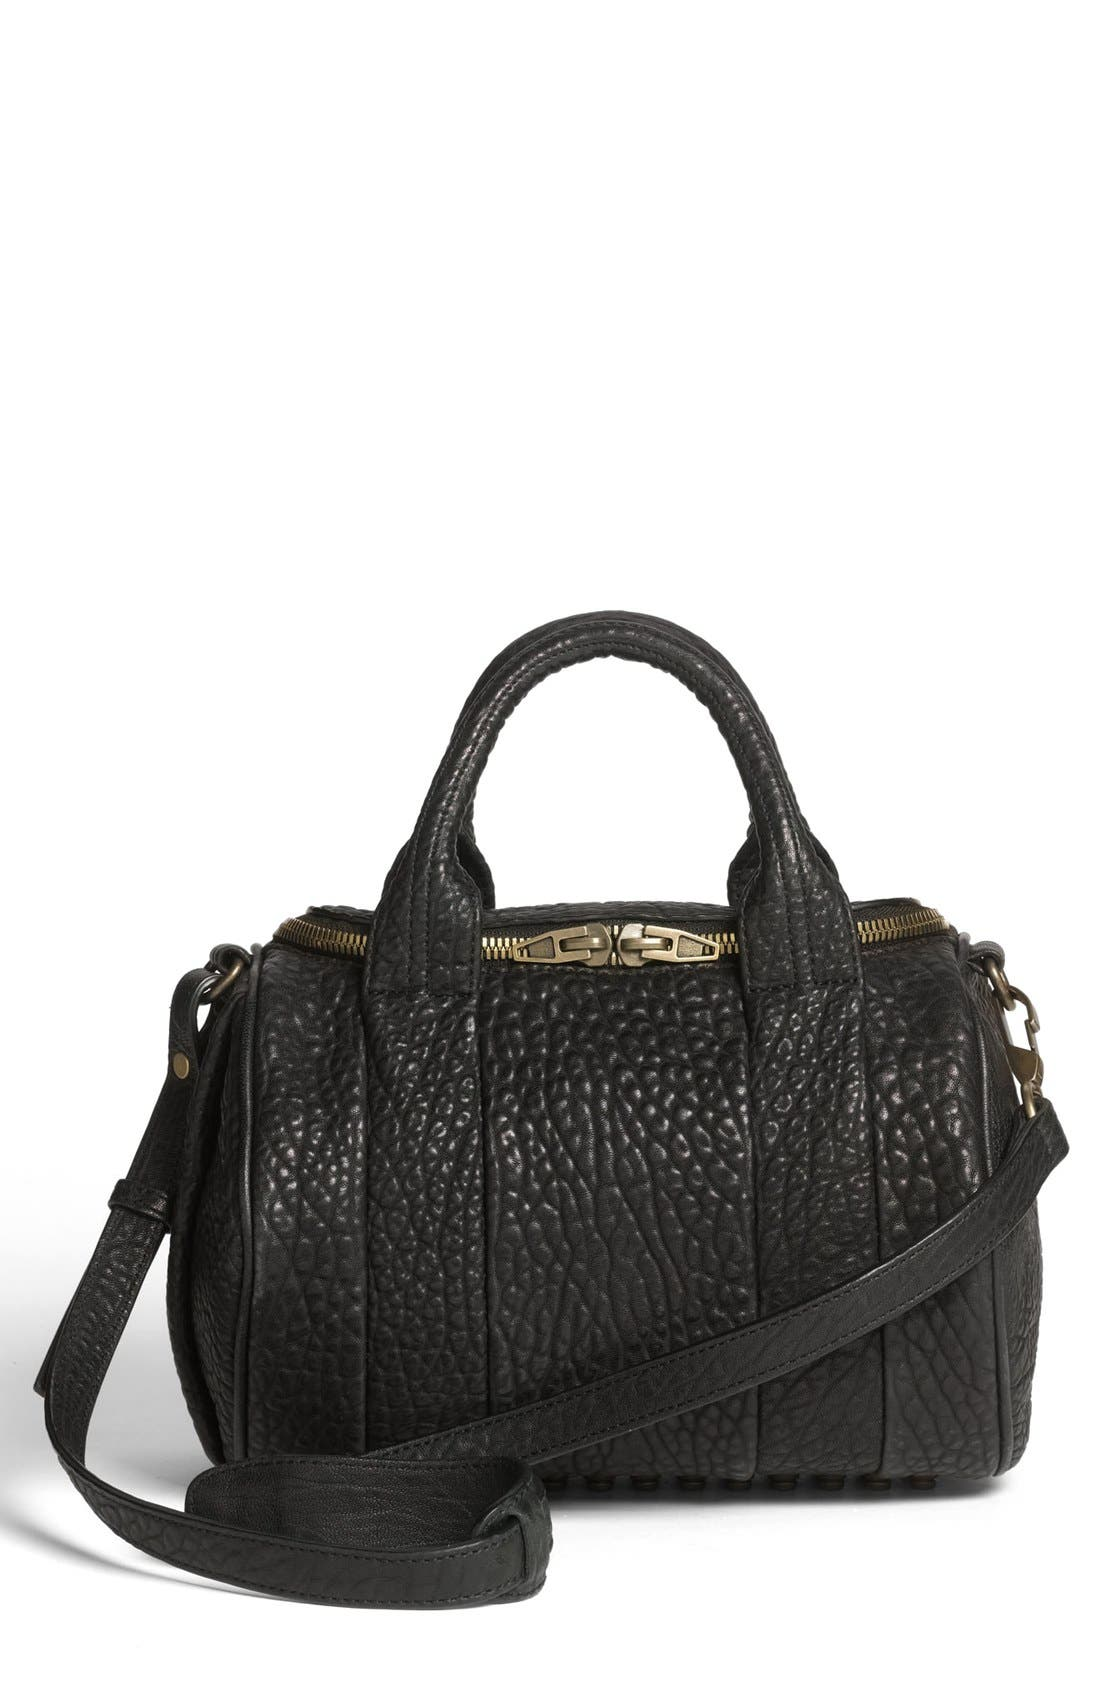 Alternate Image 1 Selected - Alexander Wang 'Rockie - Antique Brass' Leather Crossbody Satchel